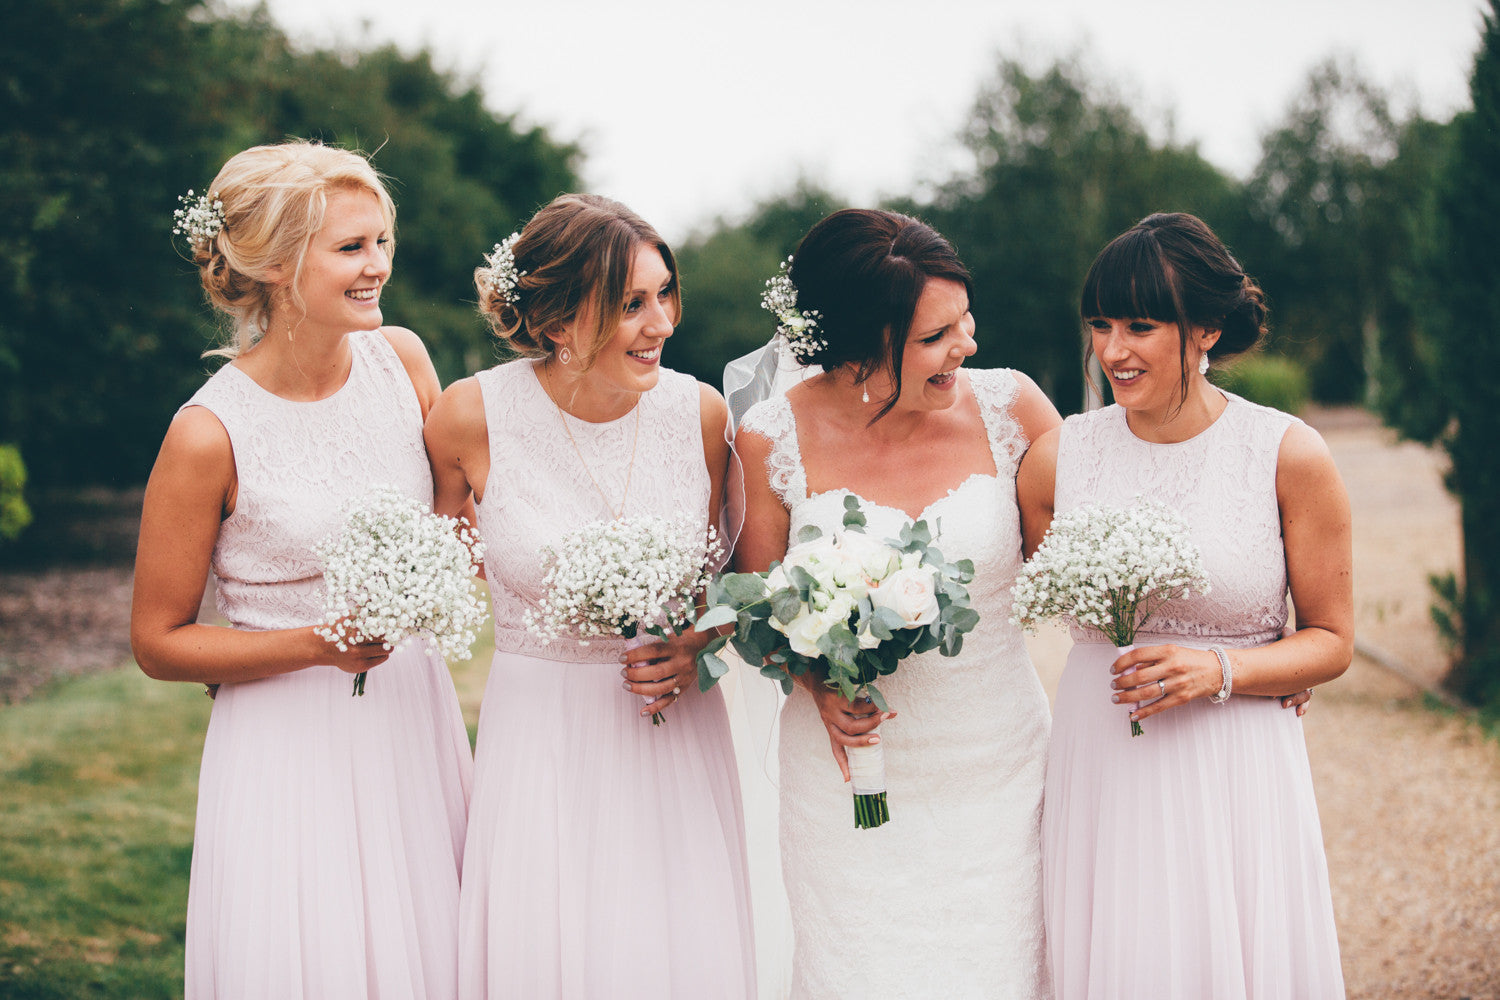 Bride and Bridesmaid's with their wedding flowers in shades of pink and white.